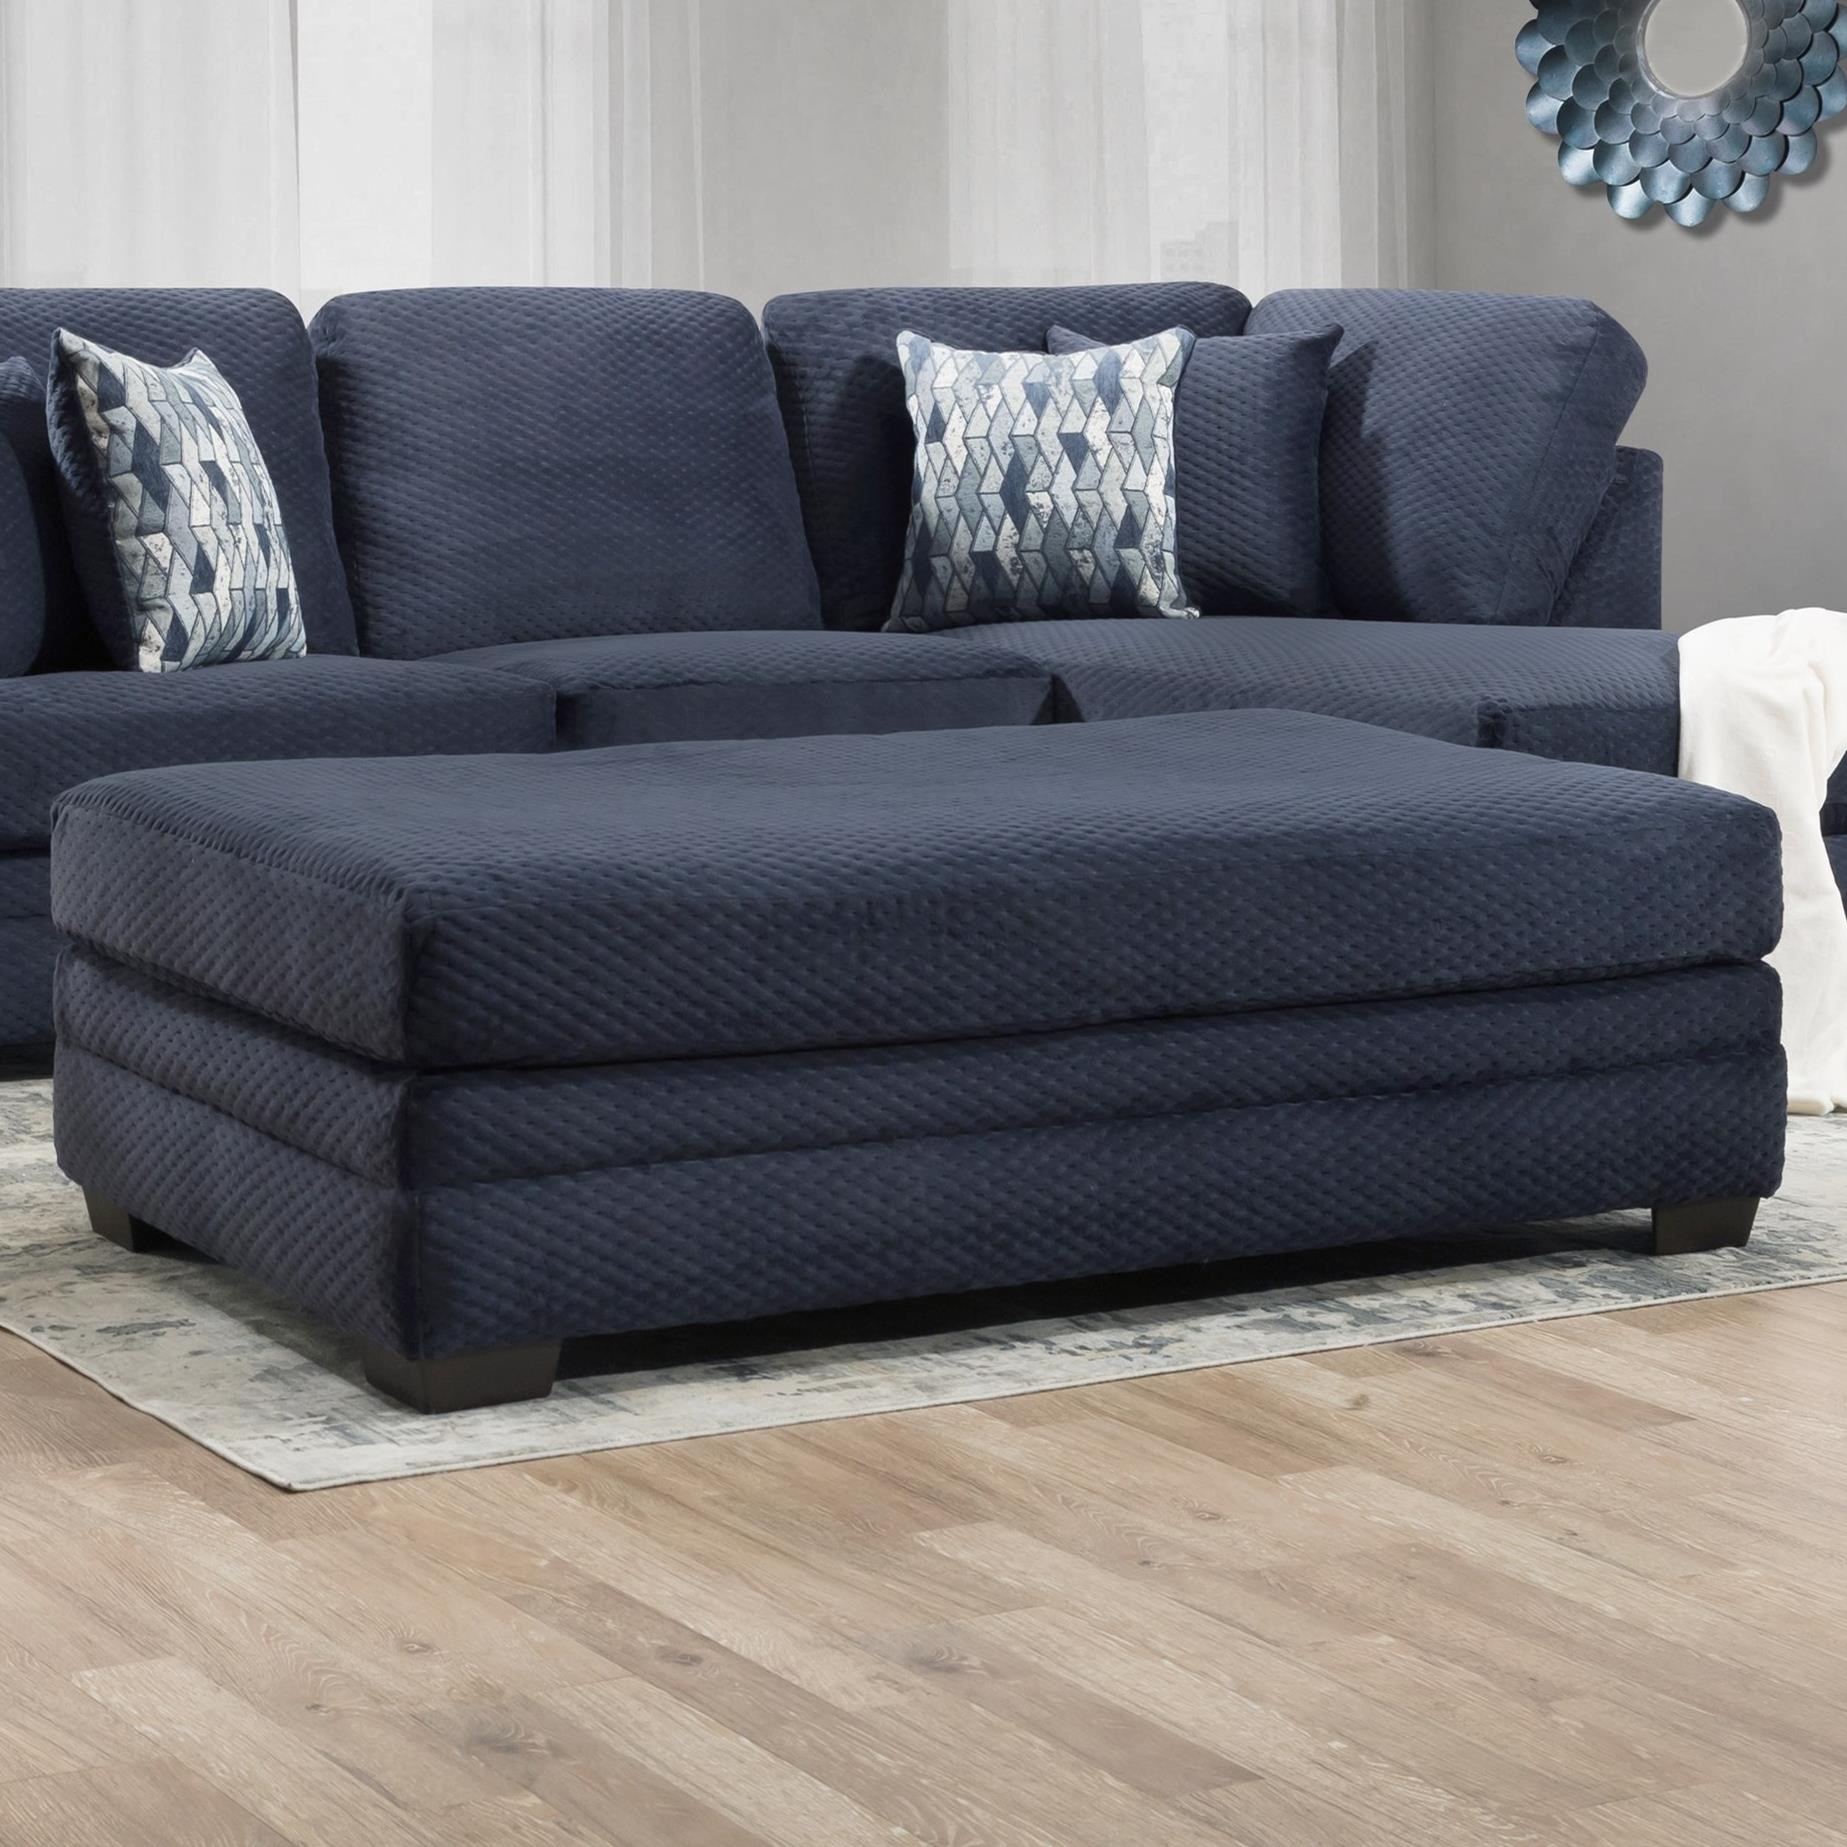 7000 Ottoman  by Peak Living at Prime Brothers Furniture